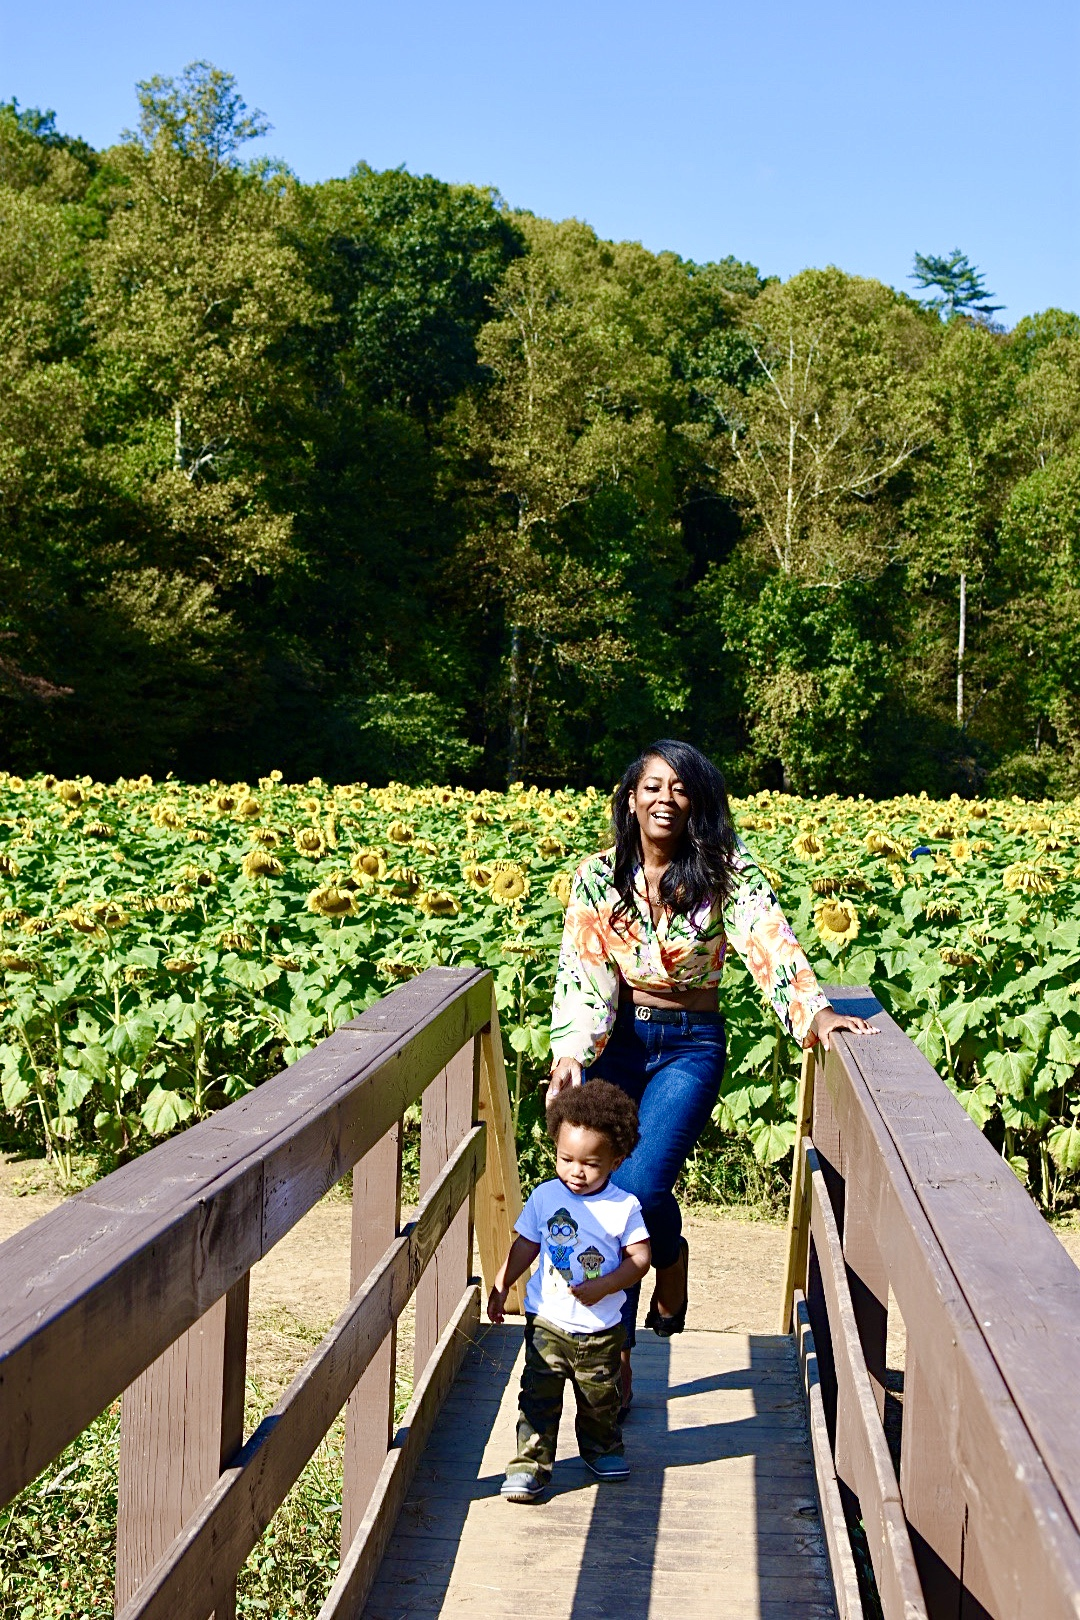 A Pretty Day Out For Sunflower Fields!